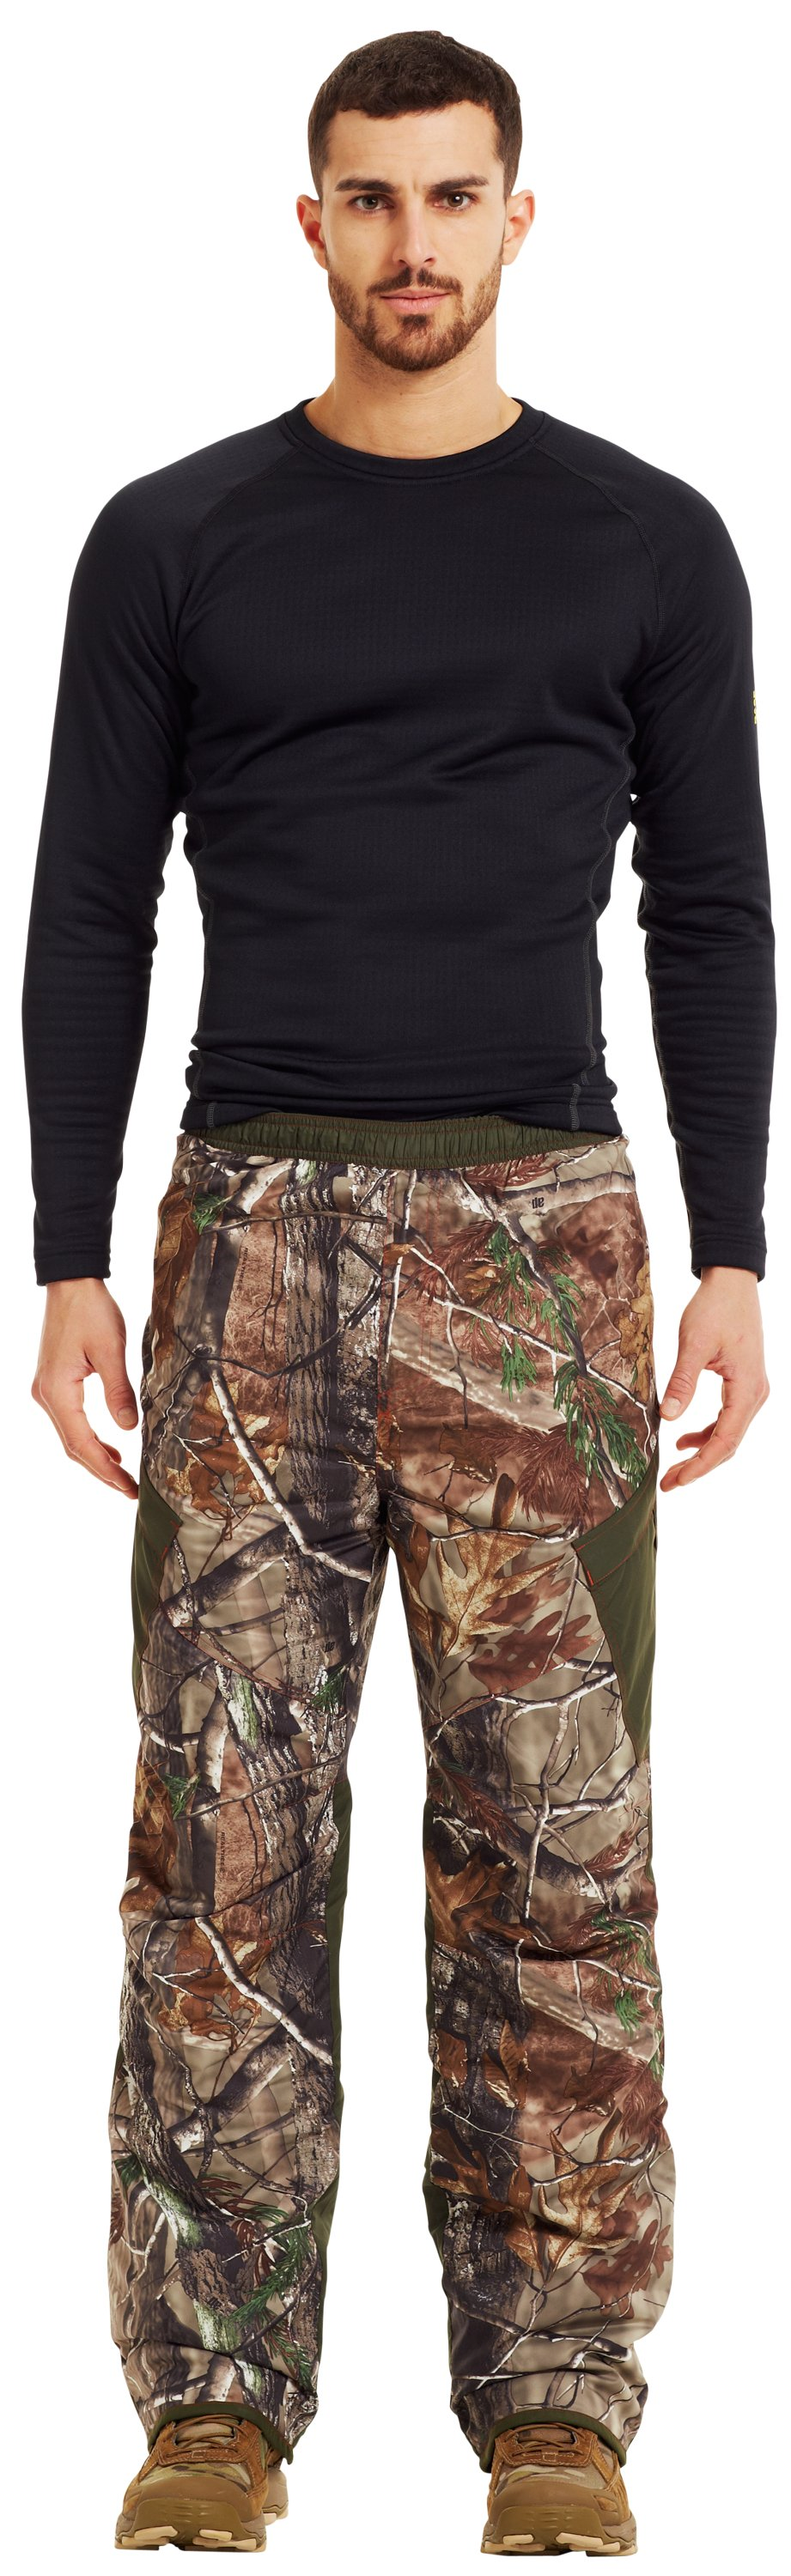 Men's ColdGear® Infrared Ridge Reaper® Primaloft® Pants, REALTREE AP-XTRA, Front